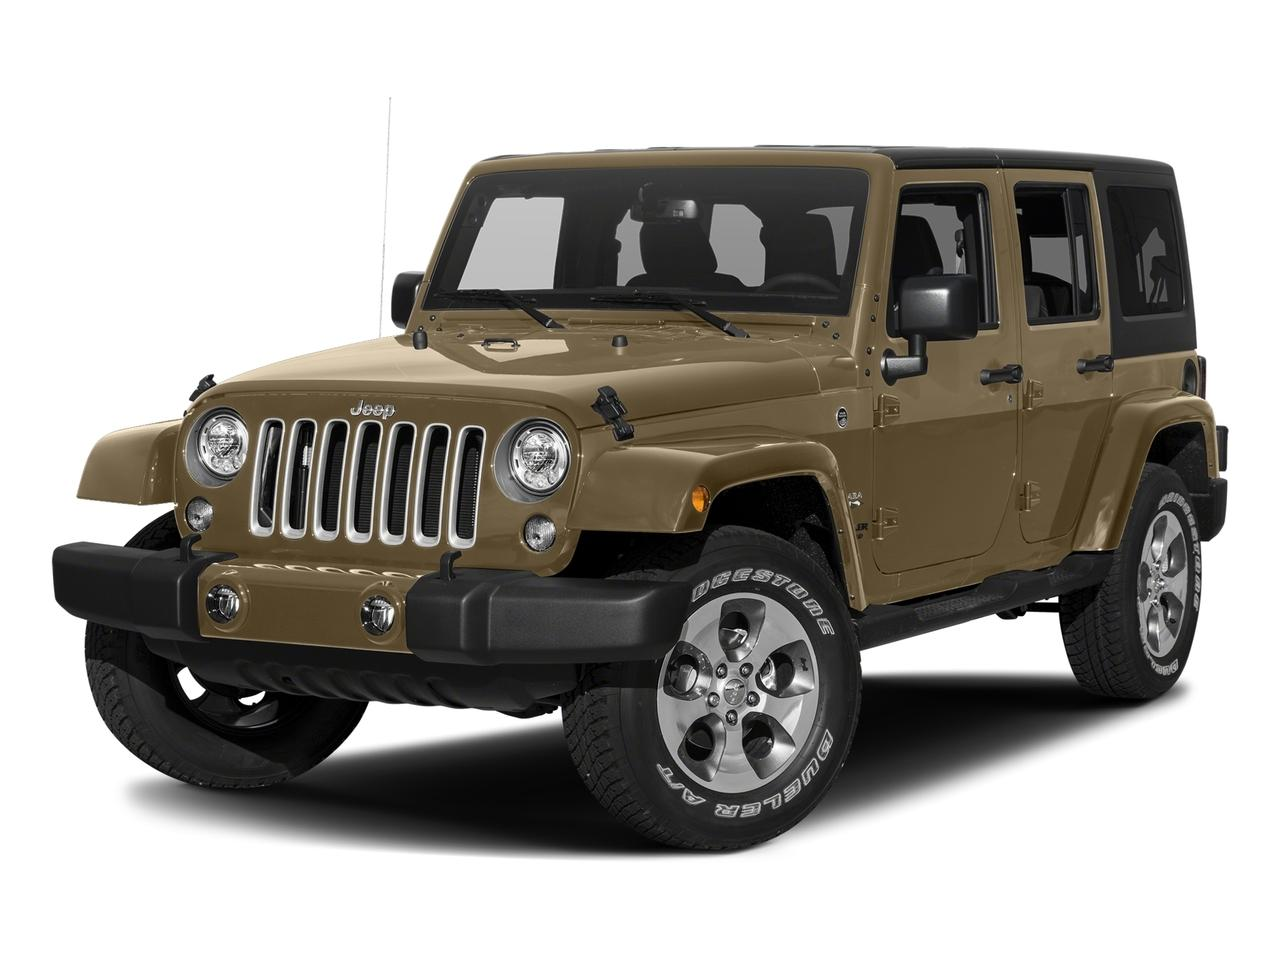 2017 Jeep Wrangler Unlimited Vehicle Photo in Broussard, LA 70518